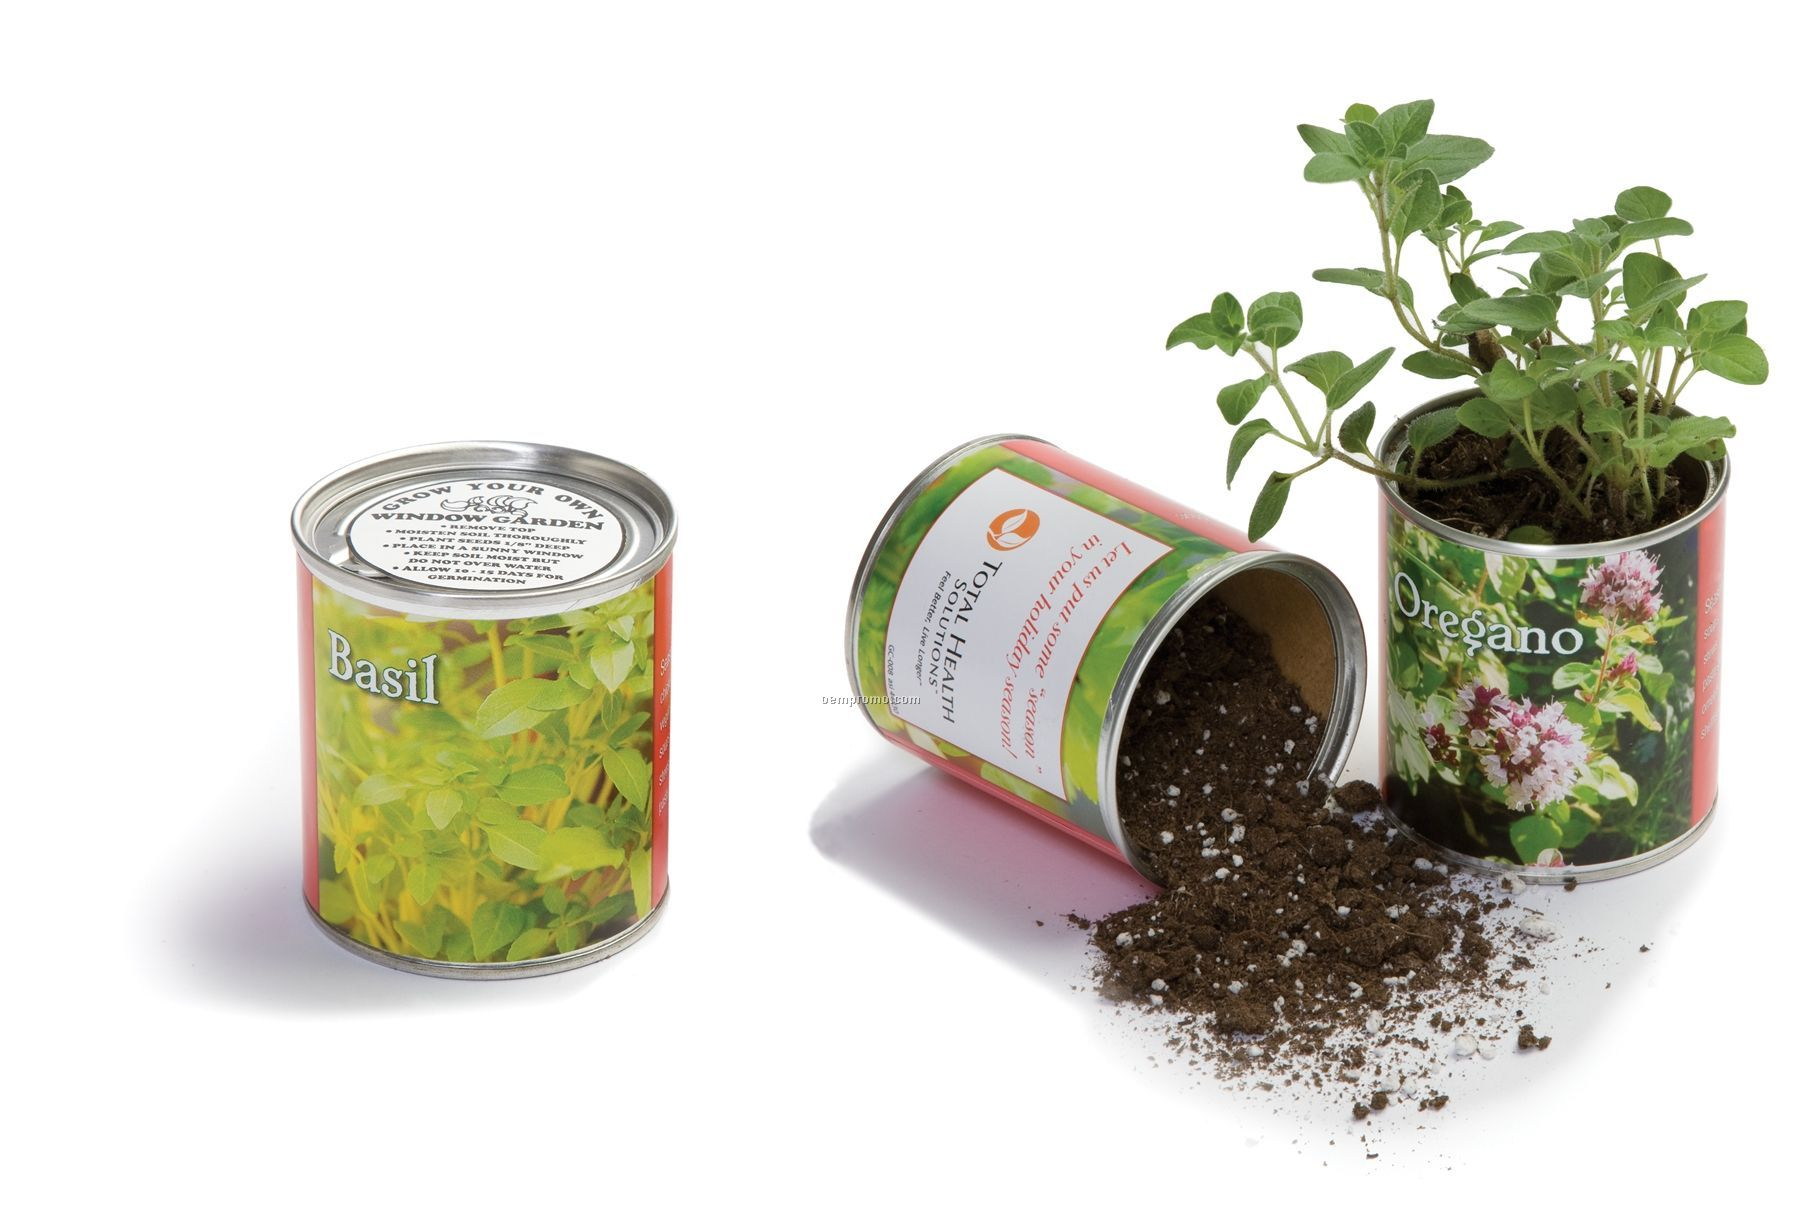 Single Herb Garden Can With Potting Soil & Seeds